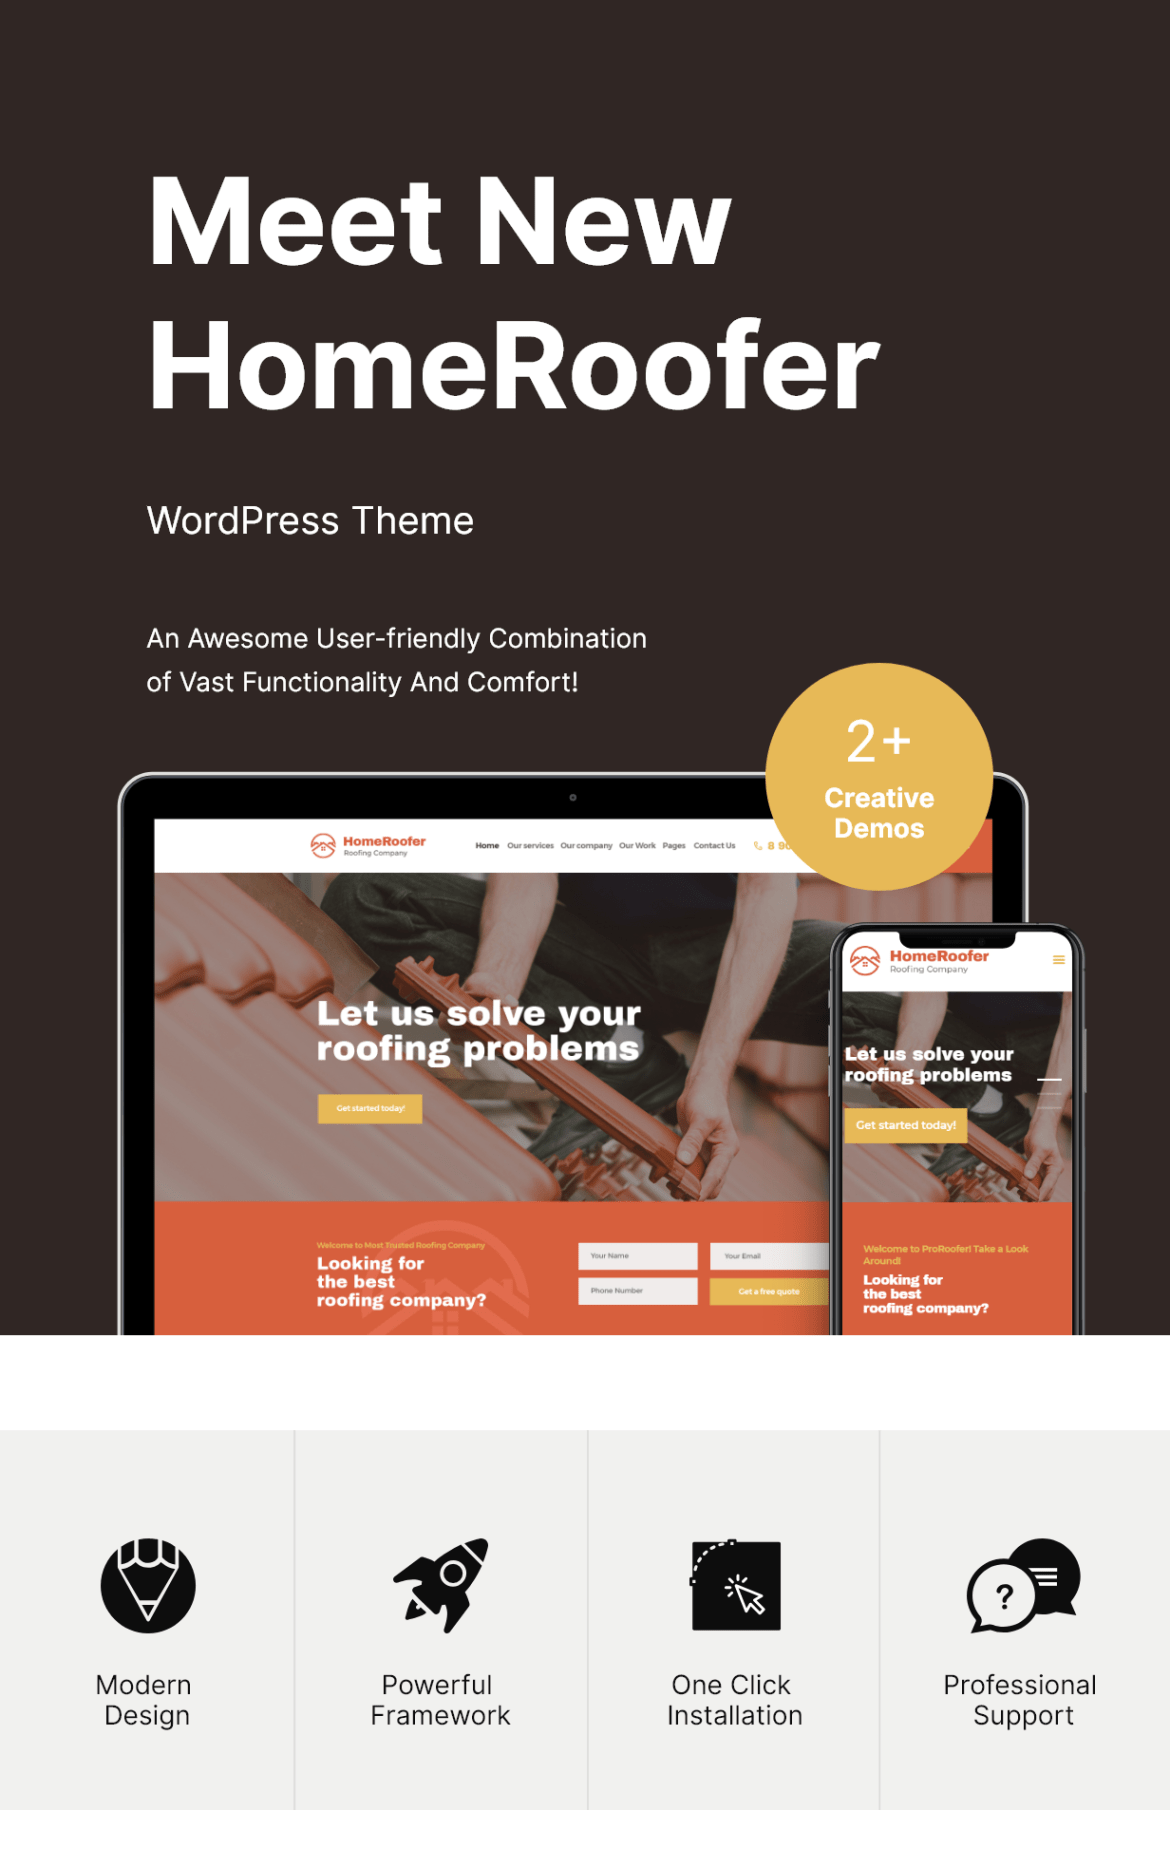 Roofing Company Services & Construction WordPress Theme Features